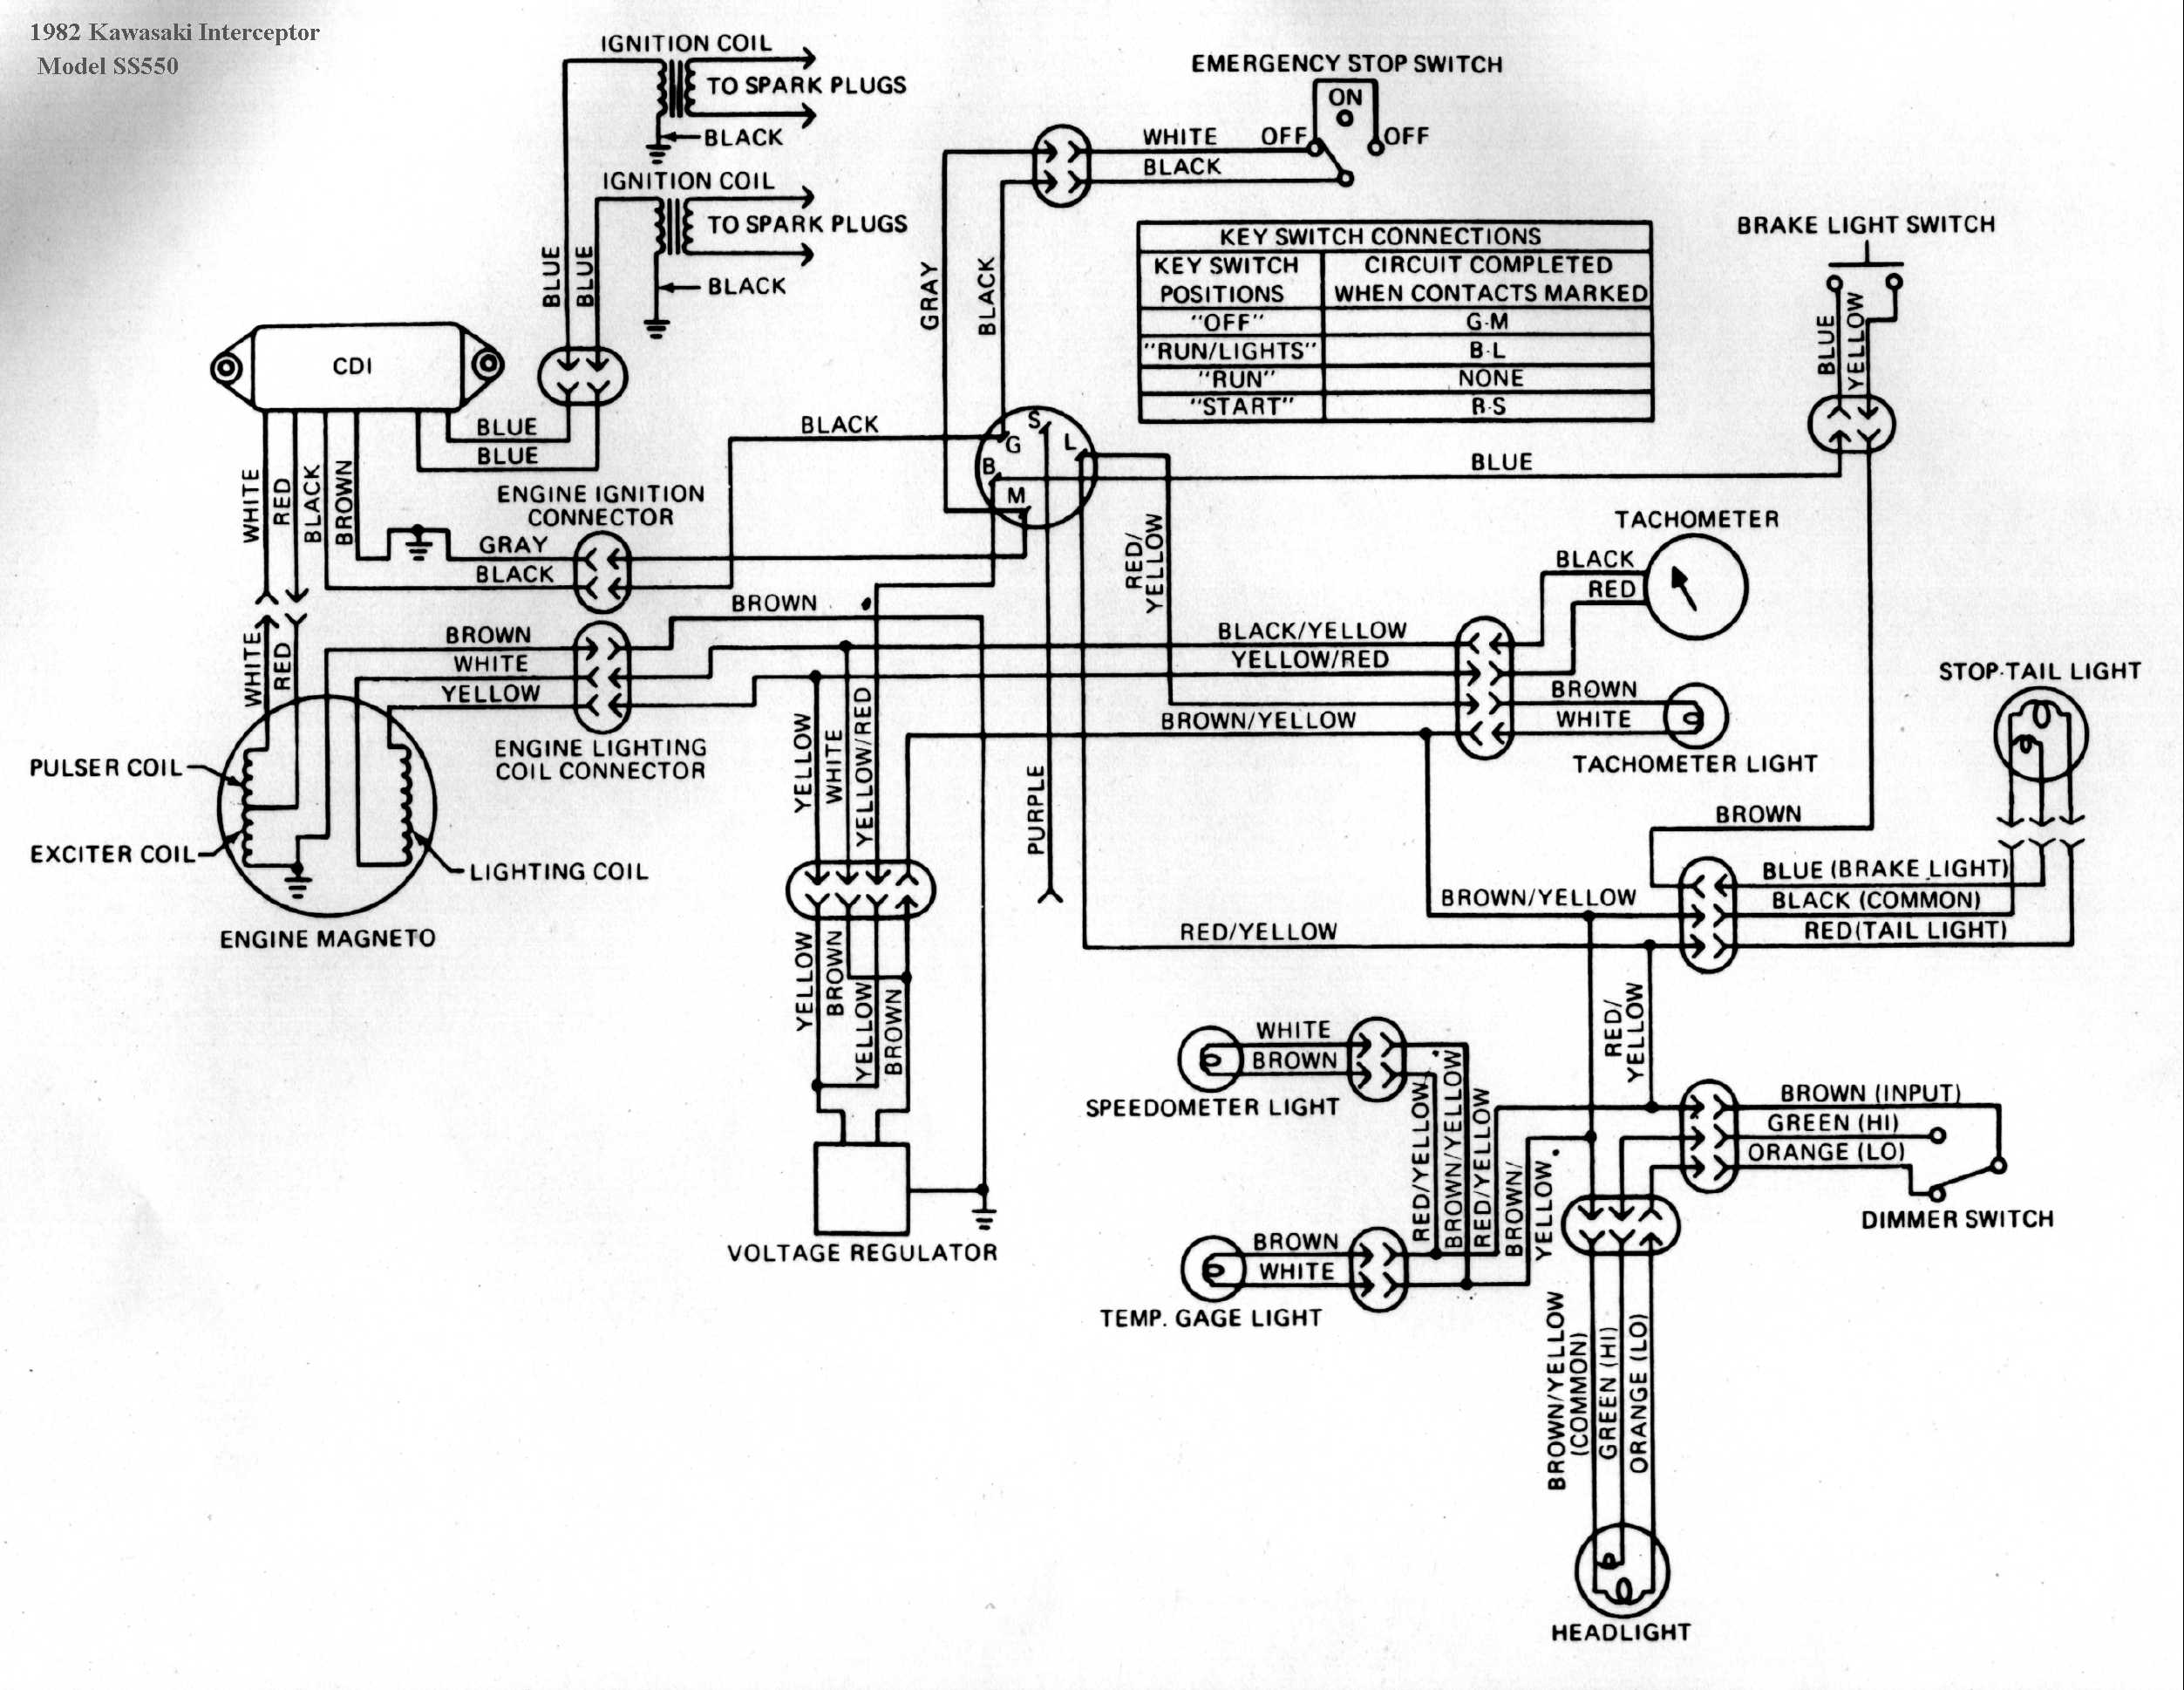 ss550 2009 kawasaki mule 4010 wiring diagram 2009 kawasaki mule 4010 1981 kawasaki 440 ltd wiring diagram at n-0.co